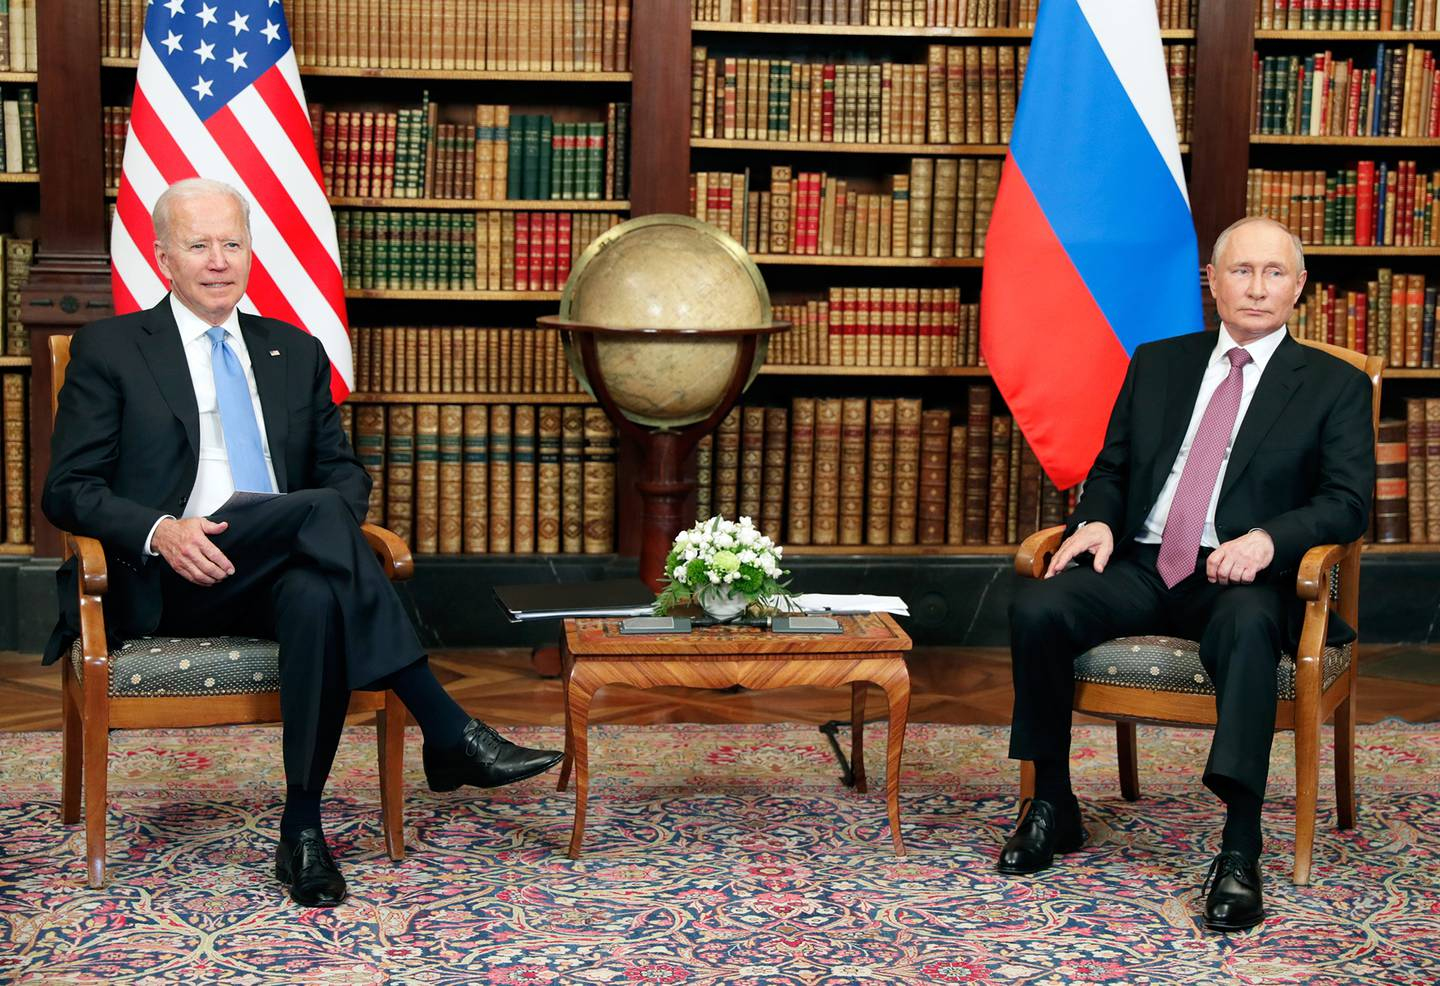 The leaders of the United States and Russia are seated with their nations' flags behind them in a library setting.